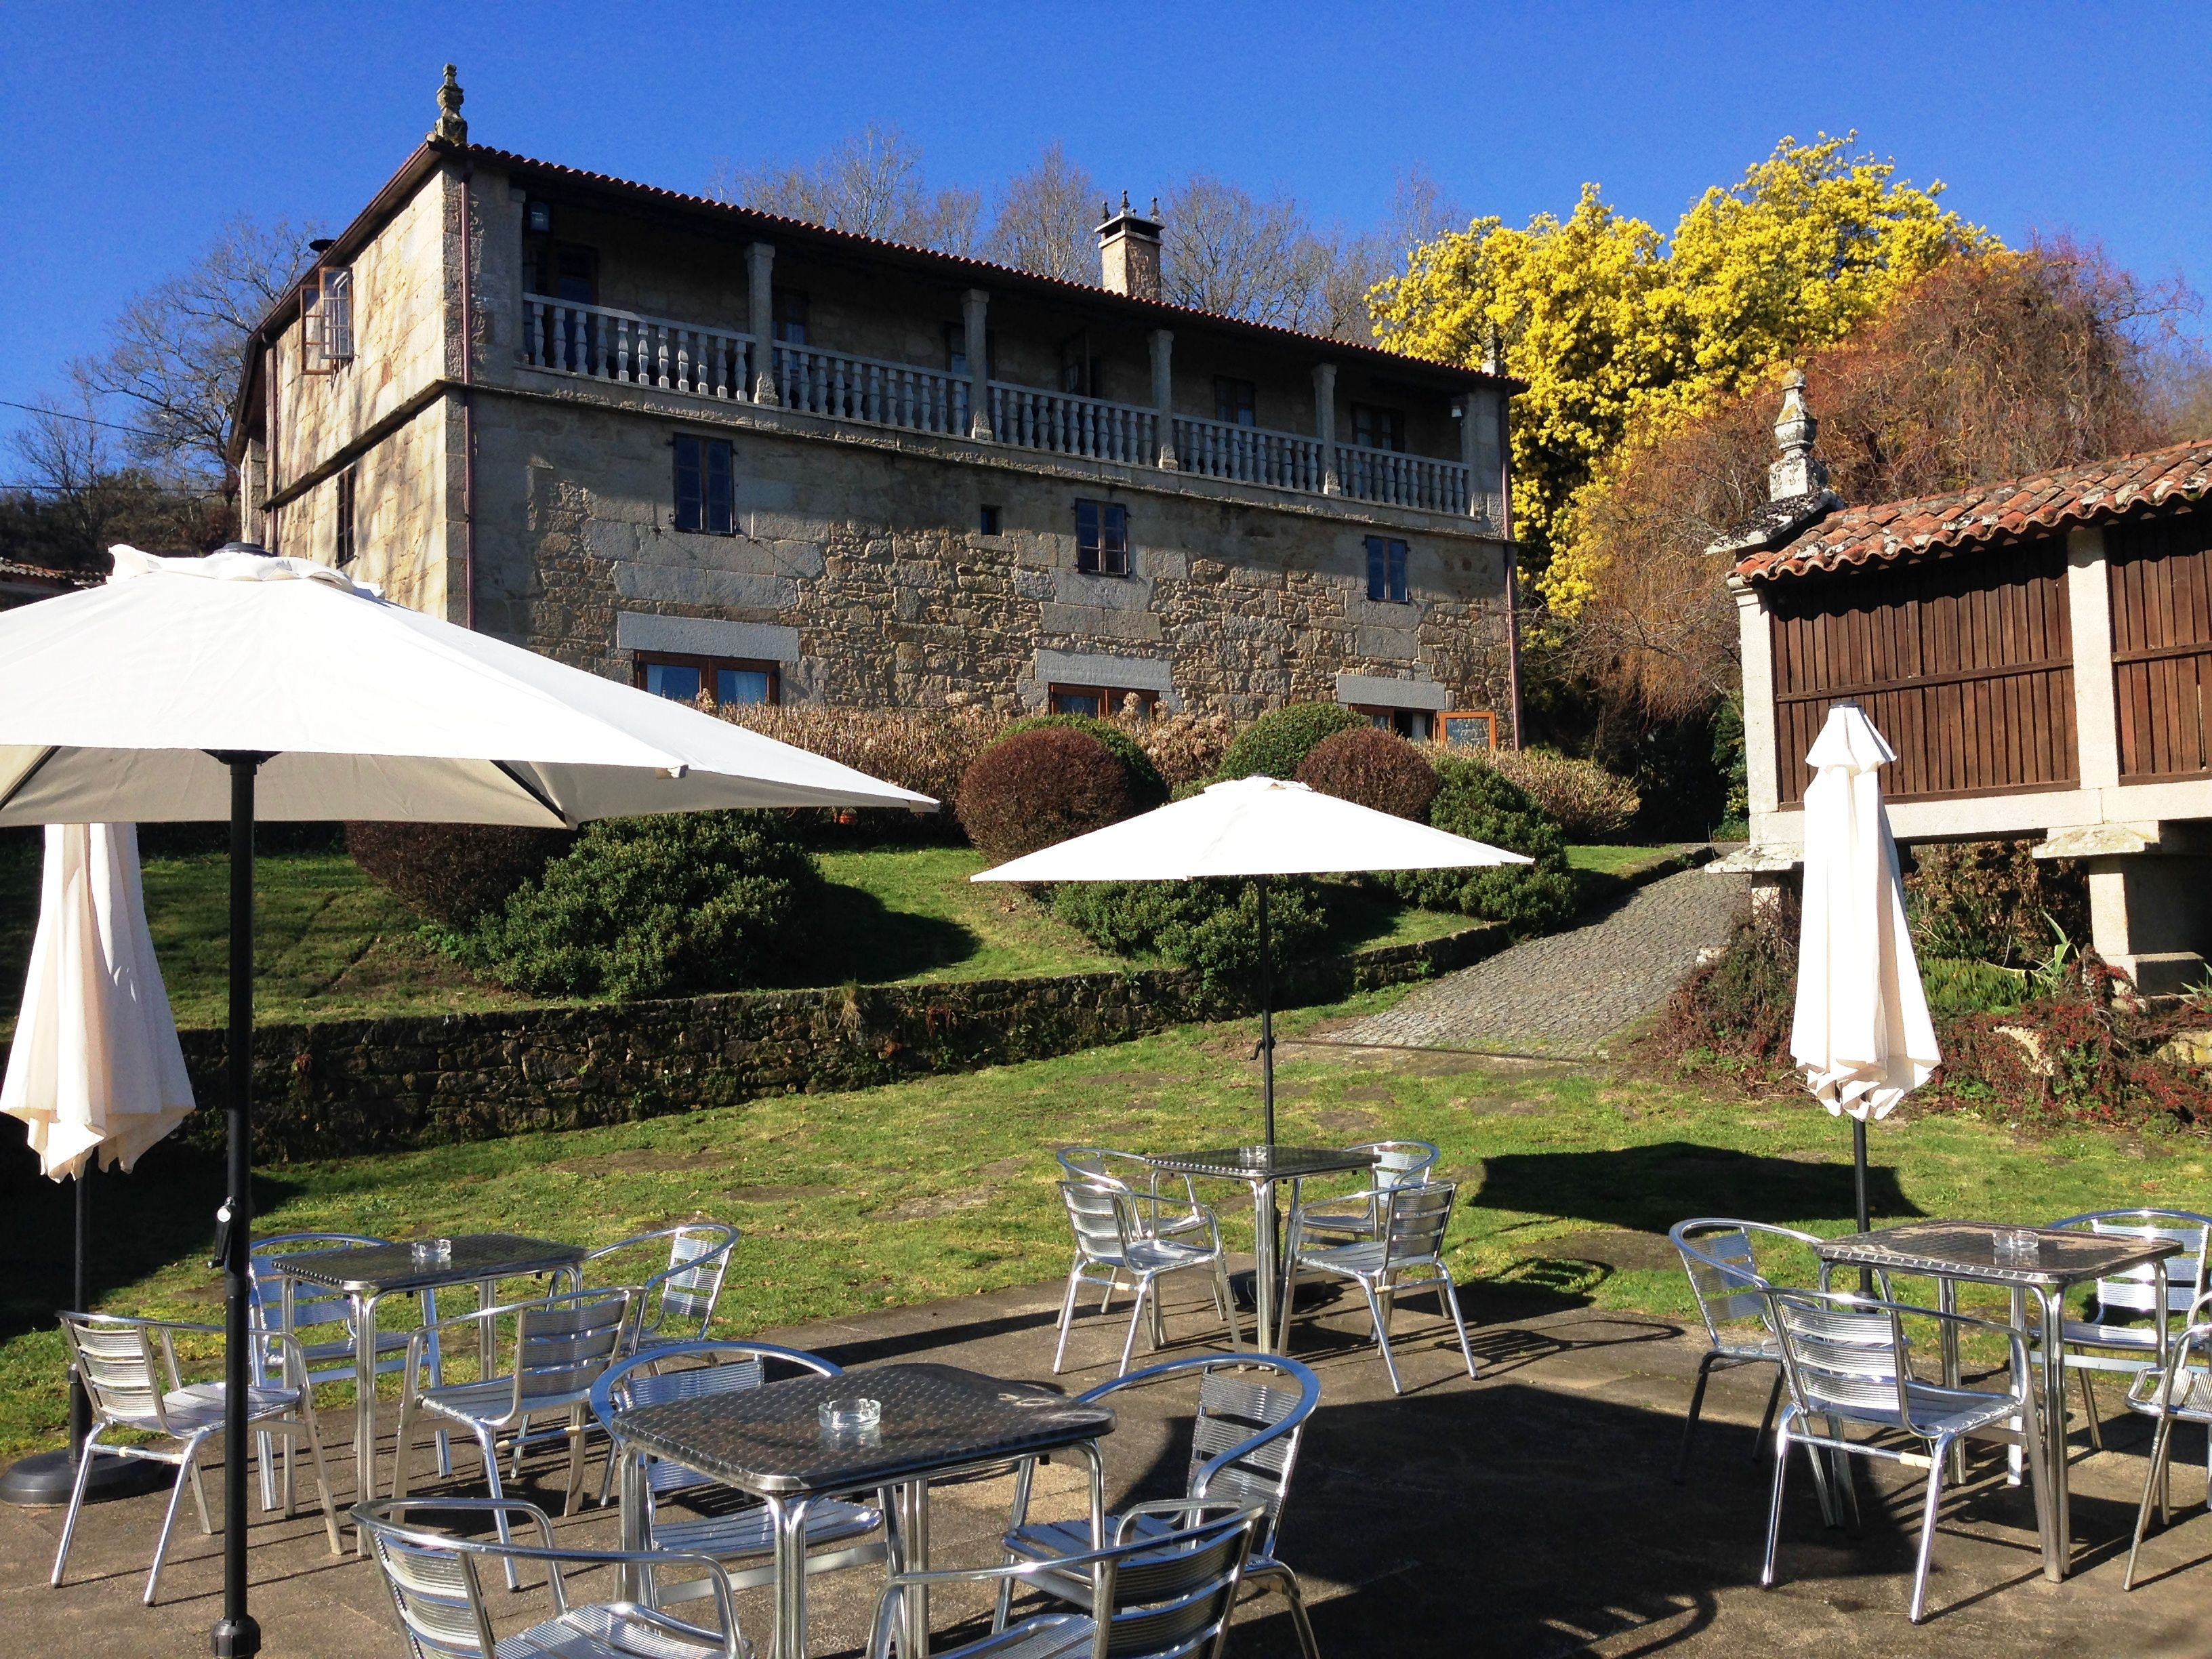 Luxury Charming Country Boutique Rural Hotel Casa Rural  ~ Cena Romantica En Santiago De Compostela